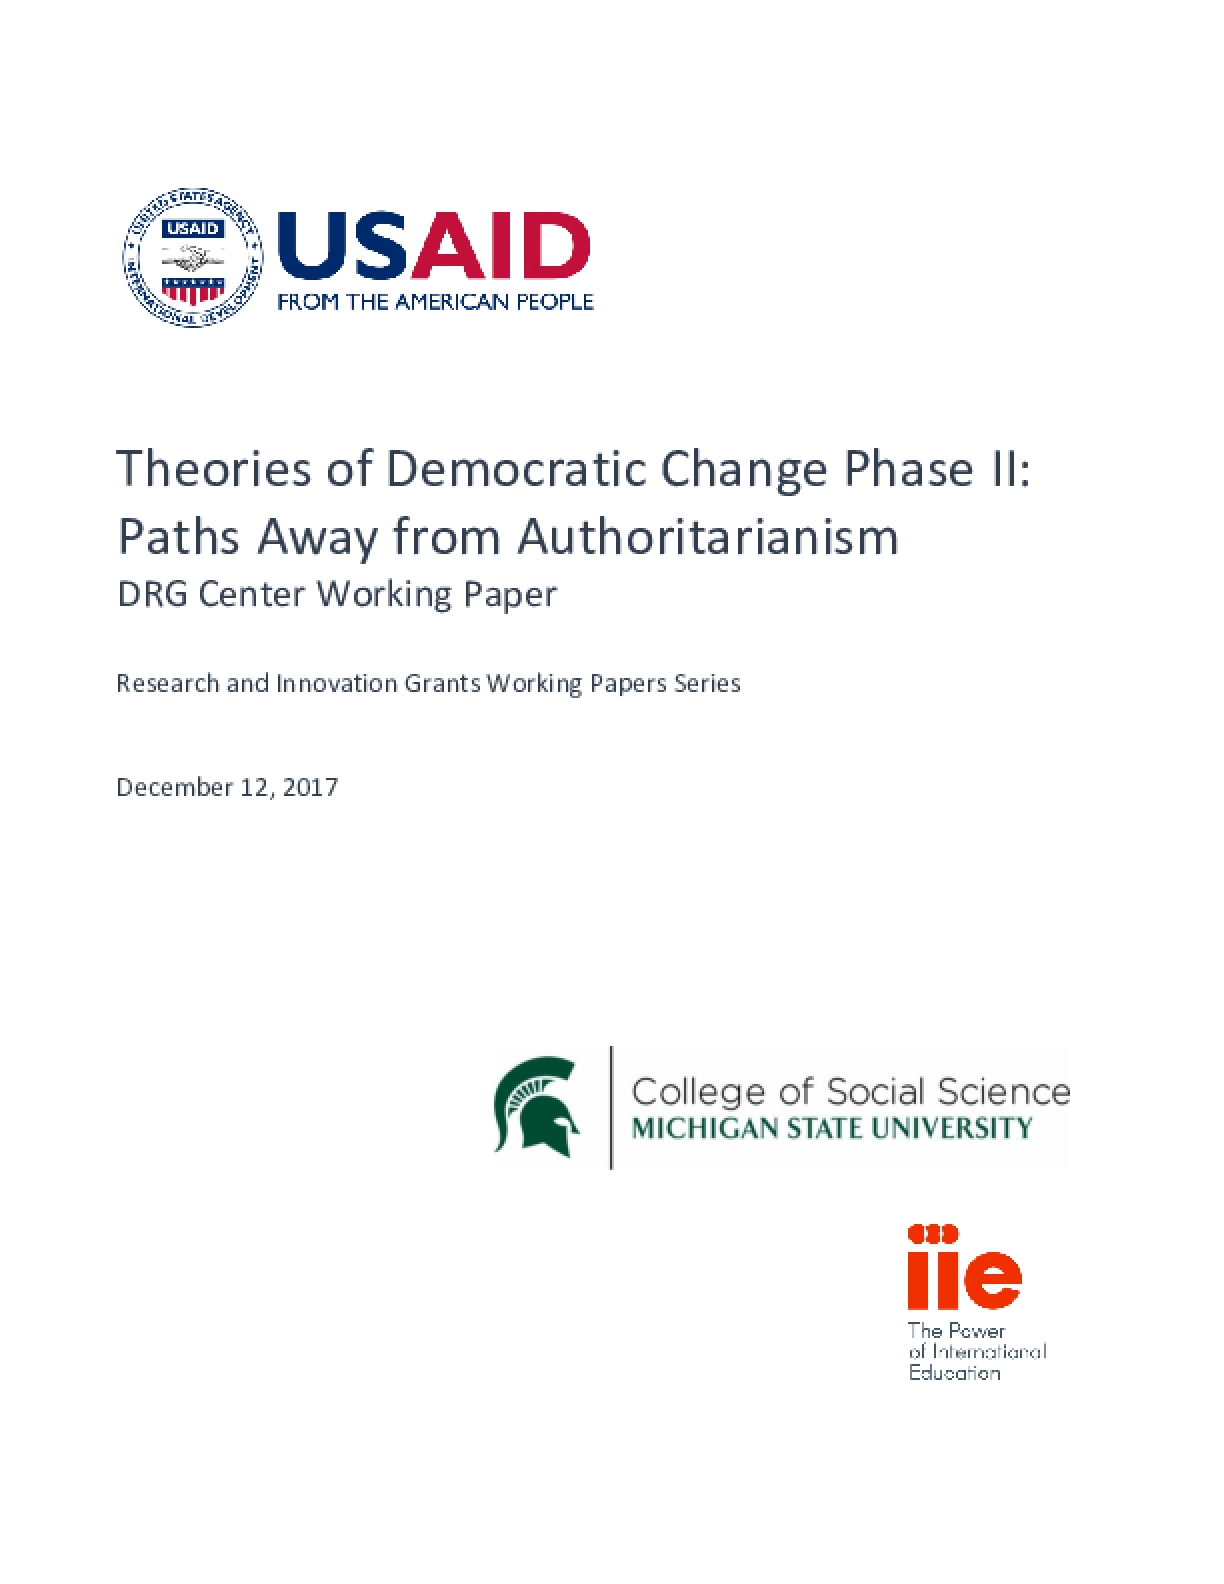 Theories of Democratic Change Phase II: Paths Away from Authoritarianism - DRG Center Working Paper